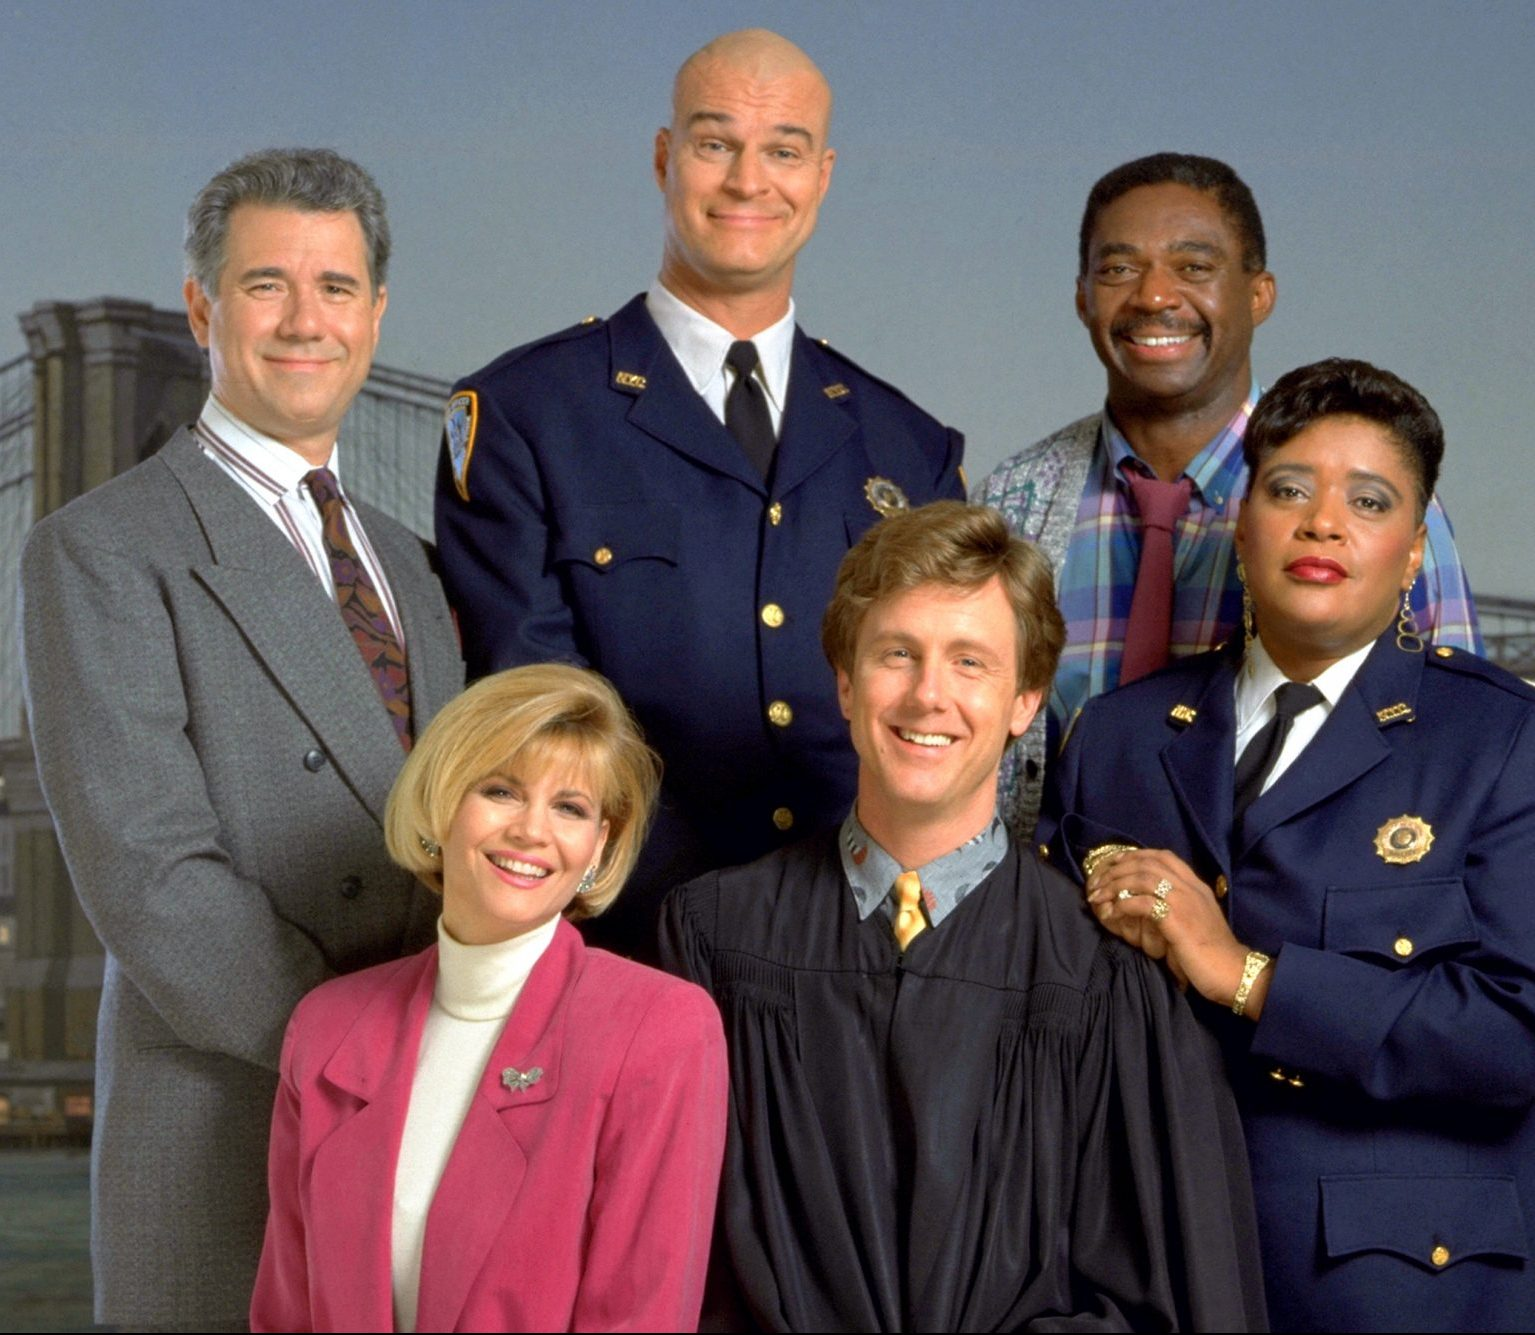 image 25 e1607522372539 20 Things You Probably Didn't Know About Night Court